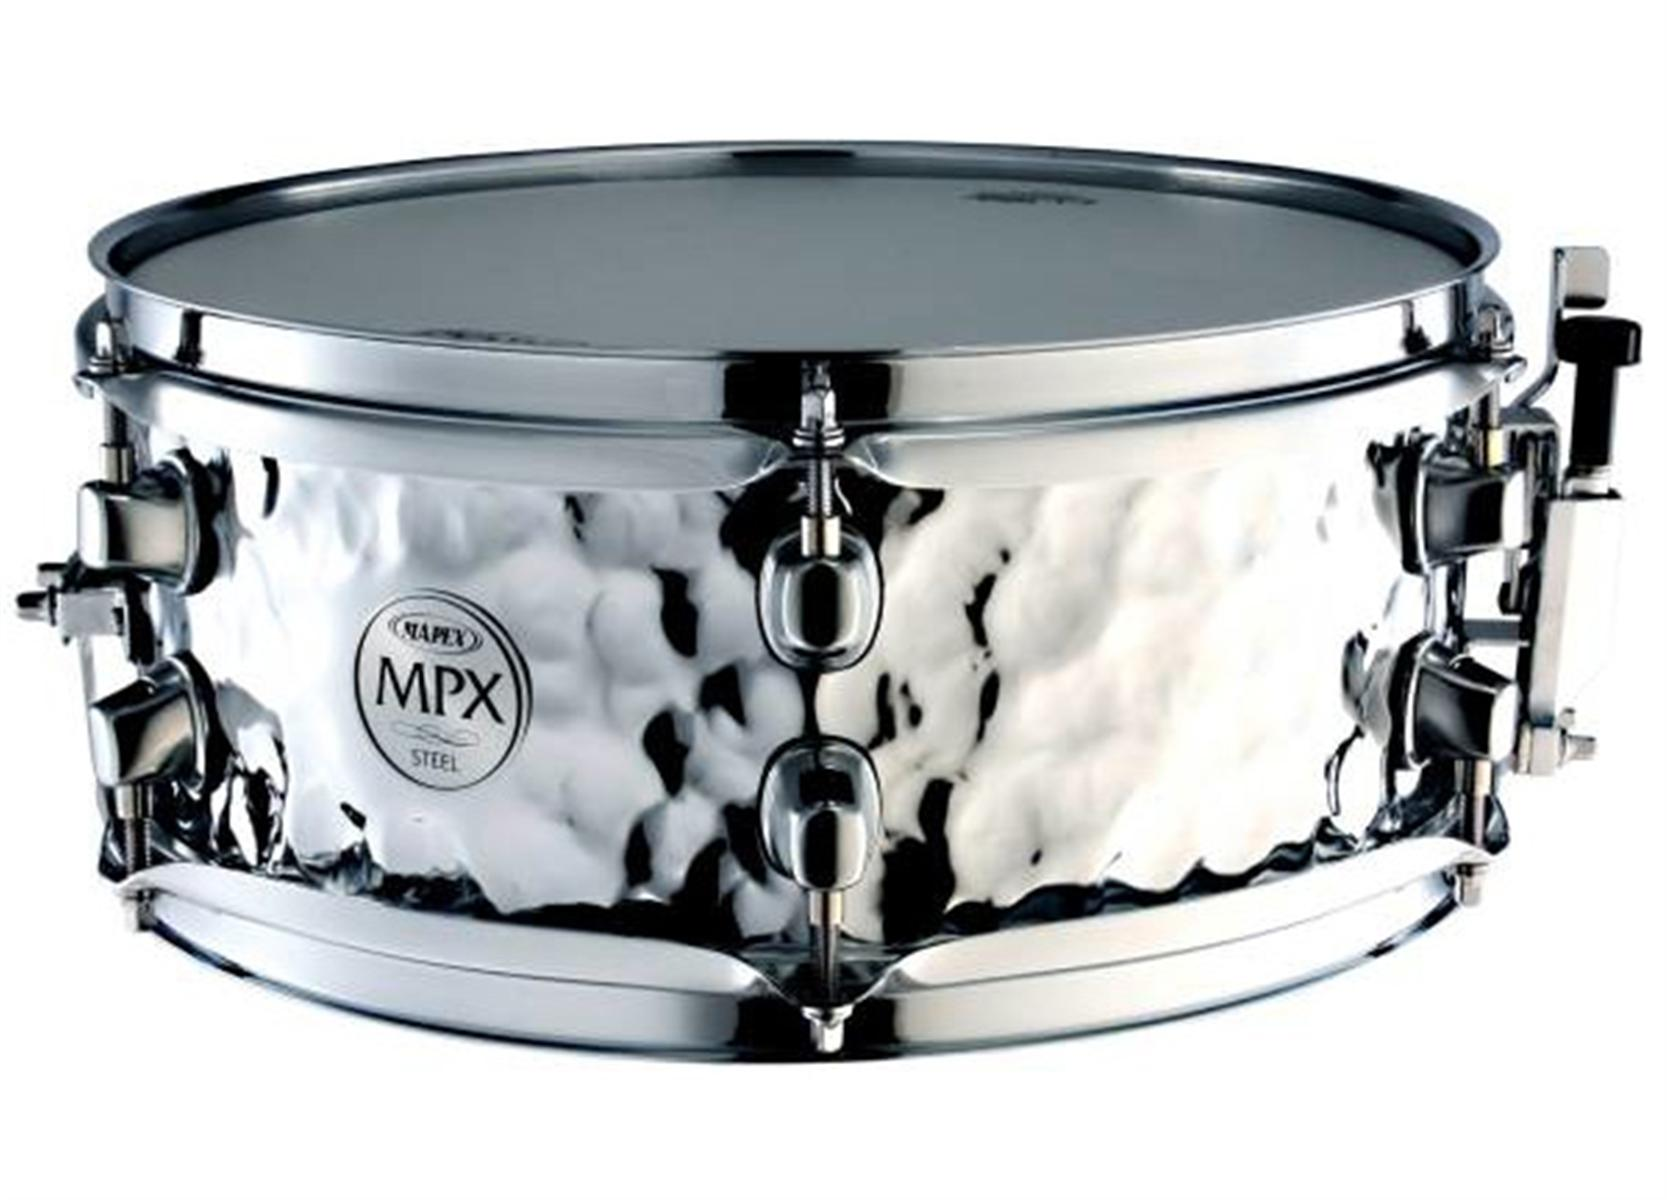 41c84142263f Mapex MPX 12x5 Hammered Steel Snare Drum